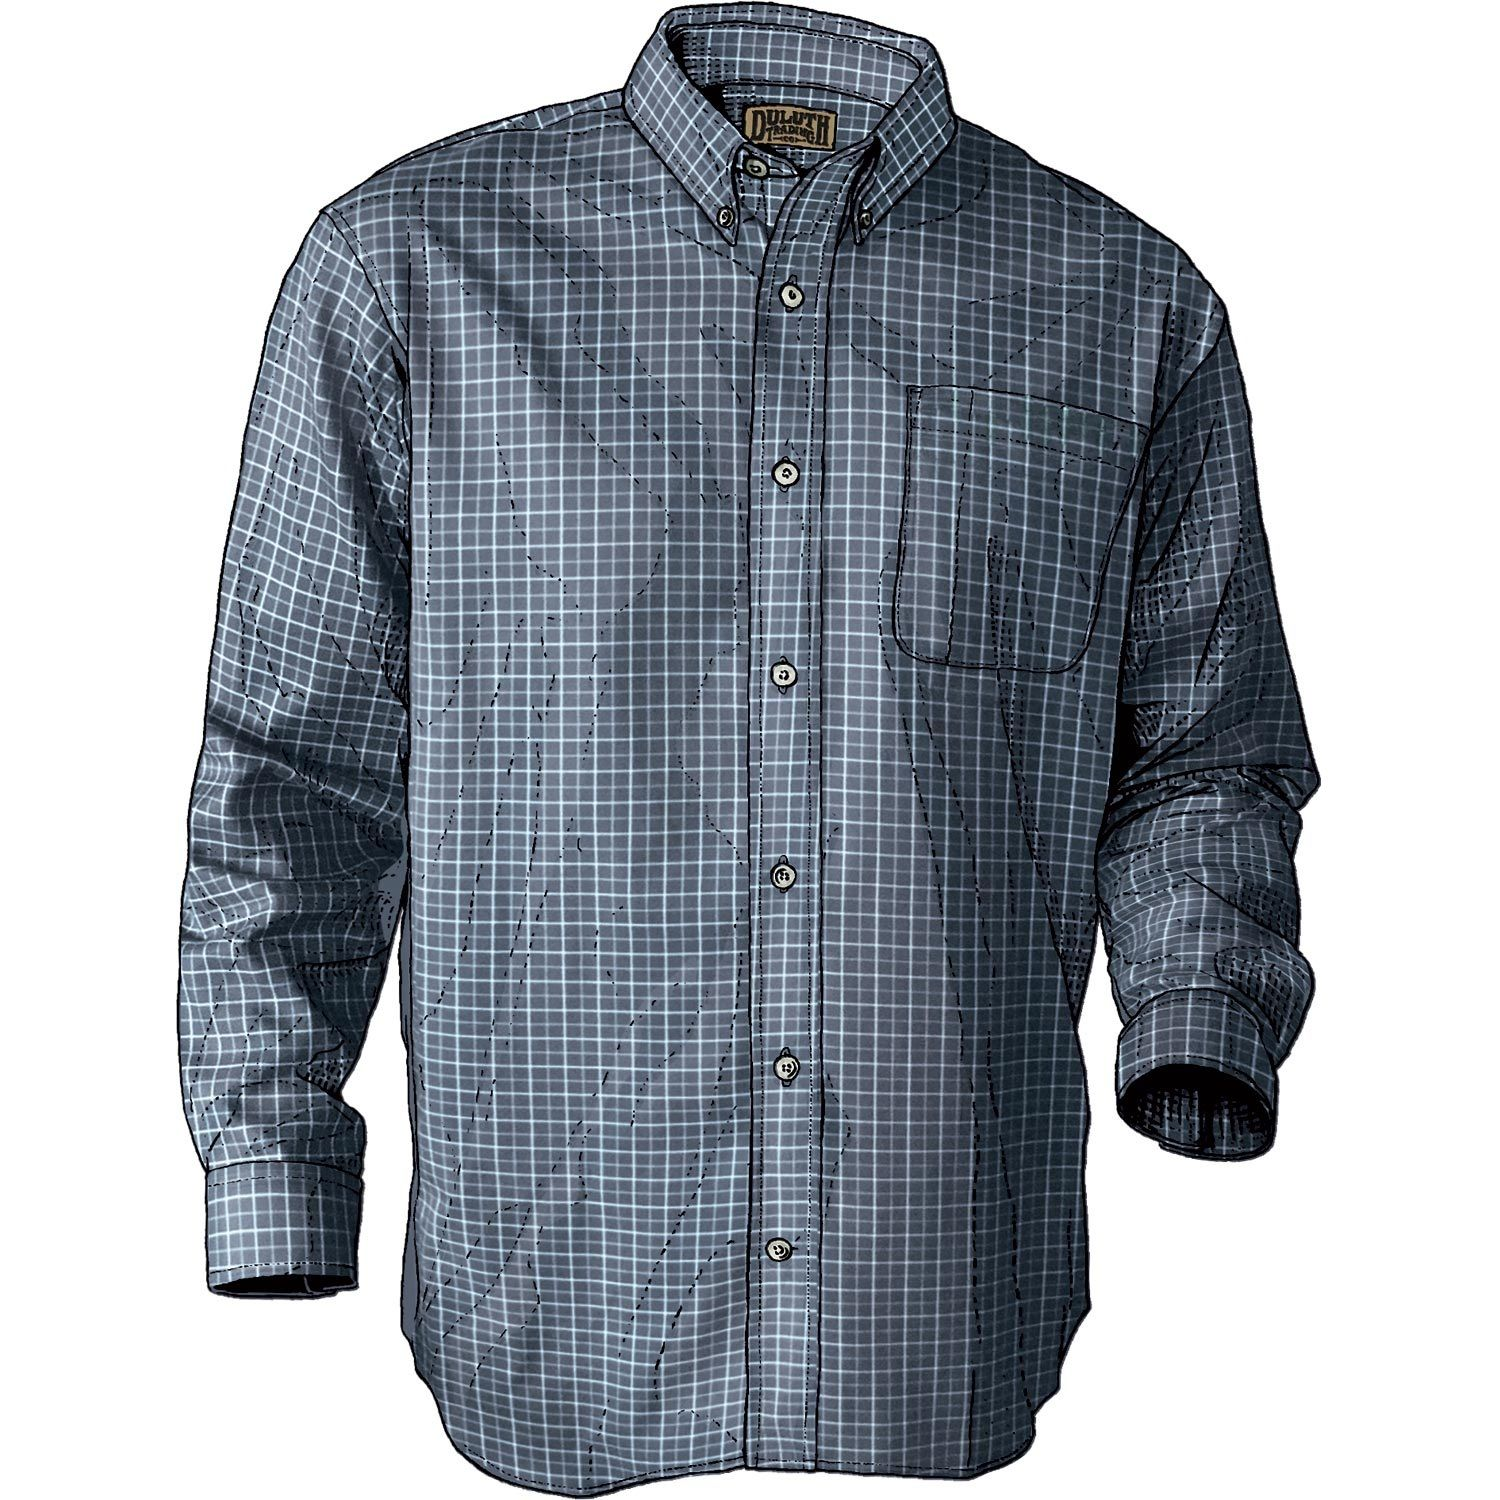 The no b s shirt from duluth trading company is soft 100 for Duluth t shirt commercial